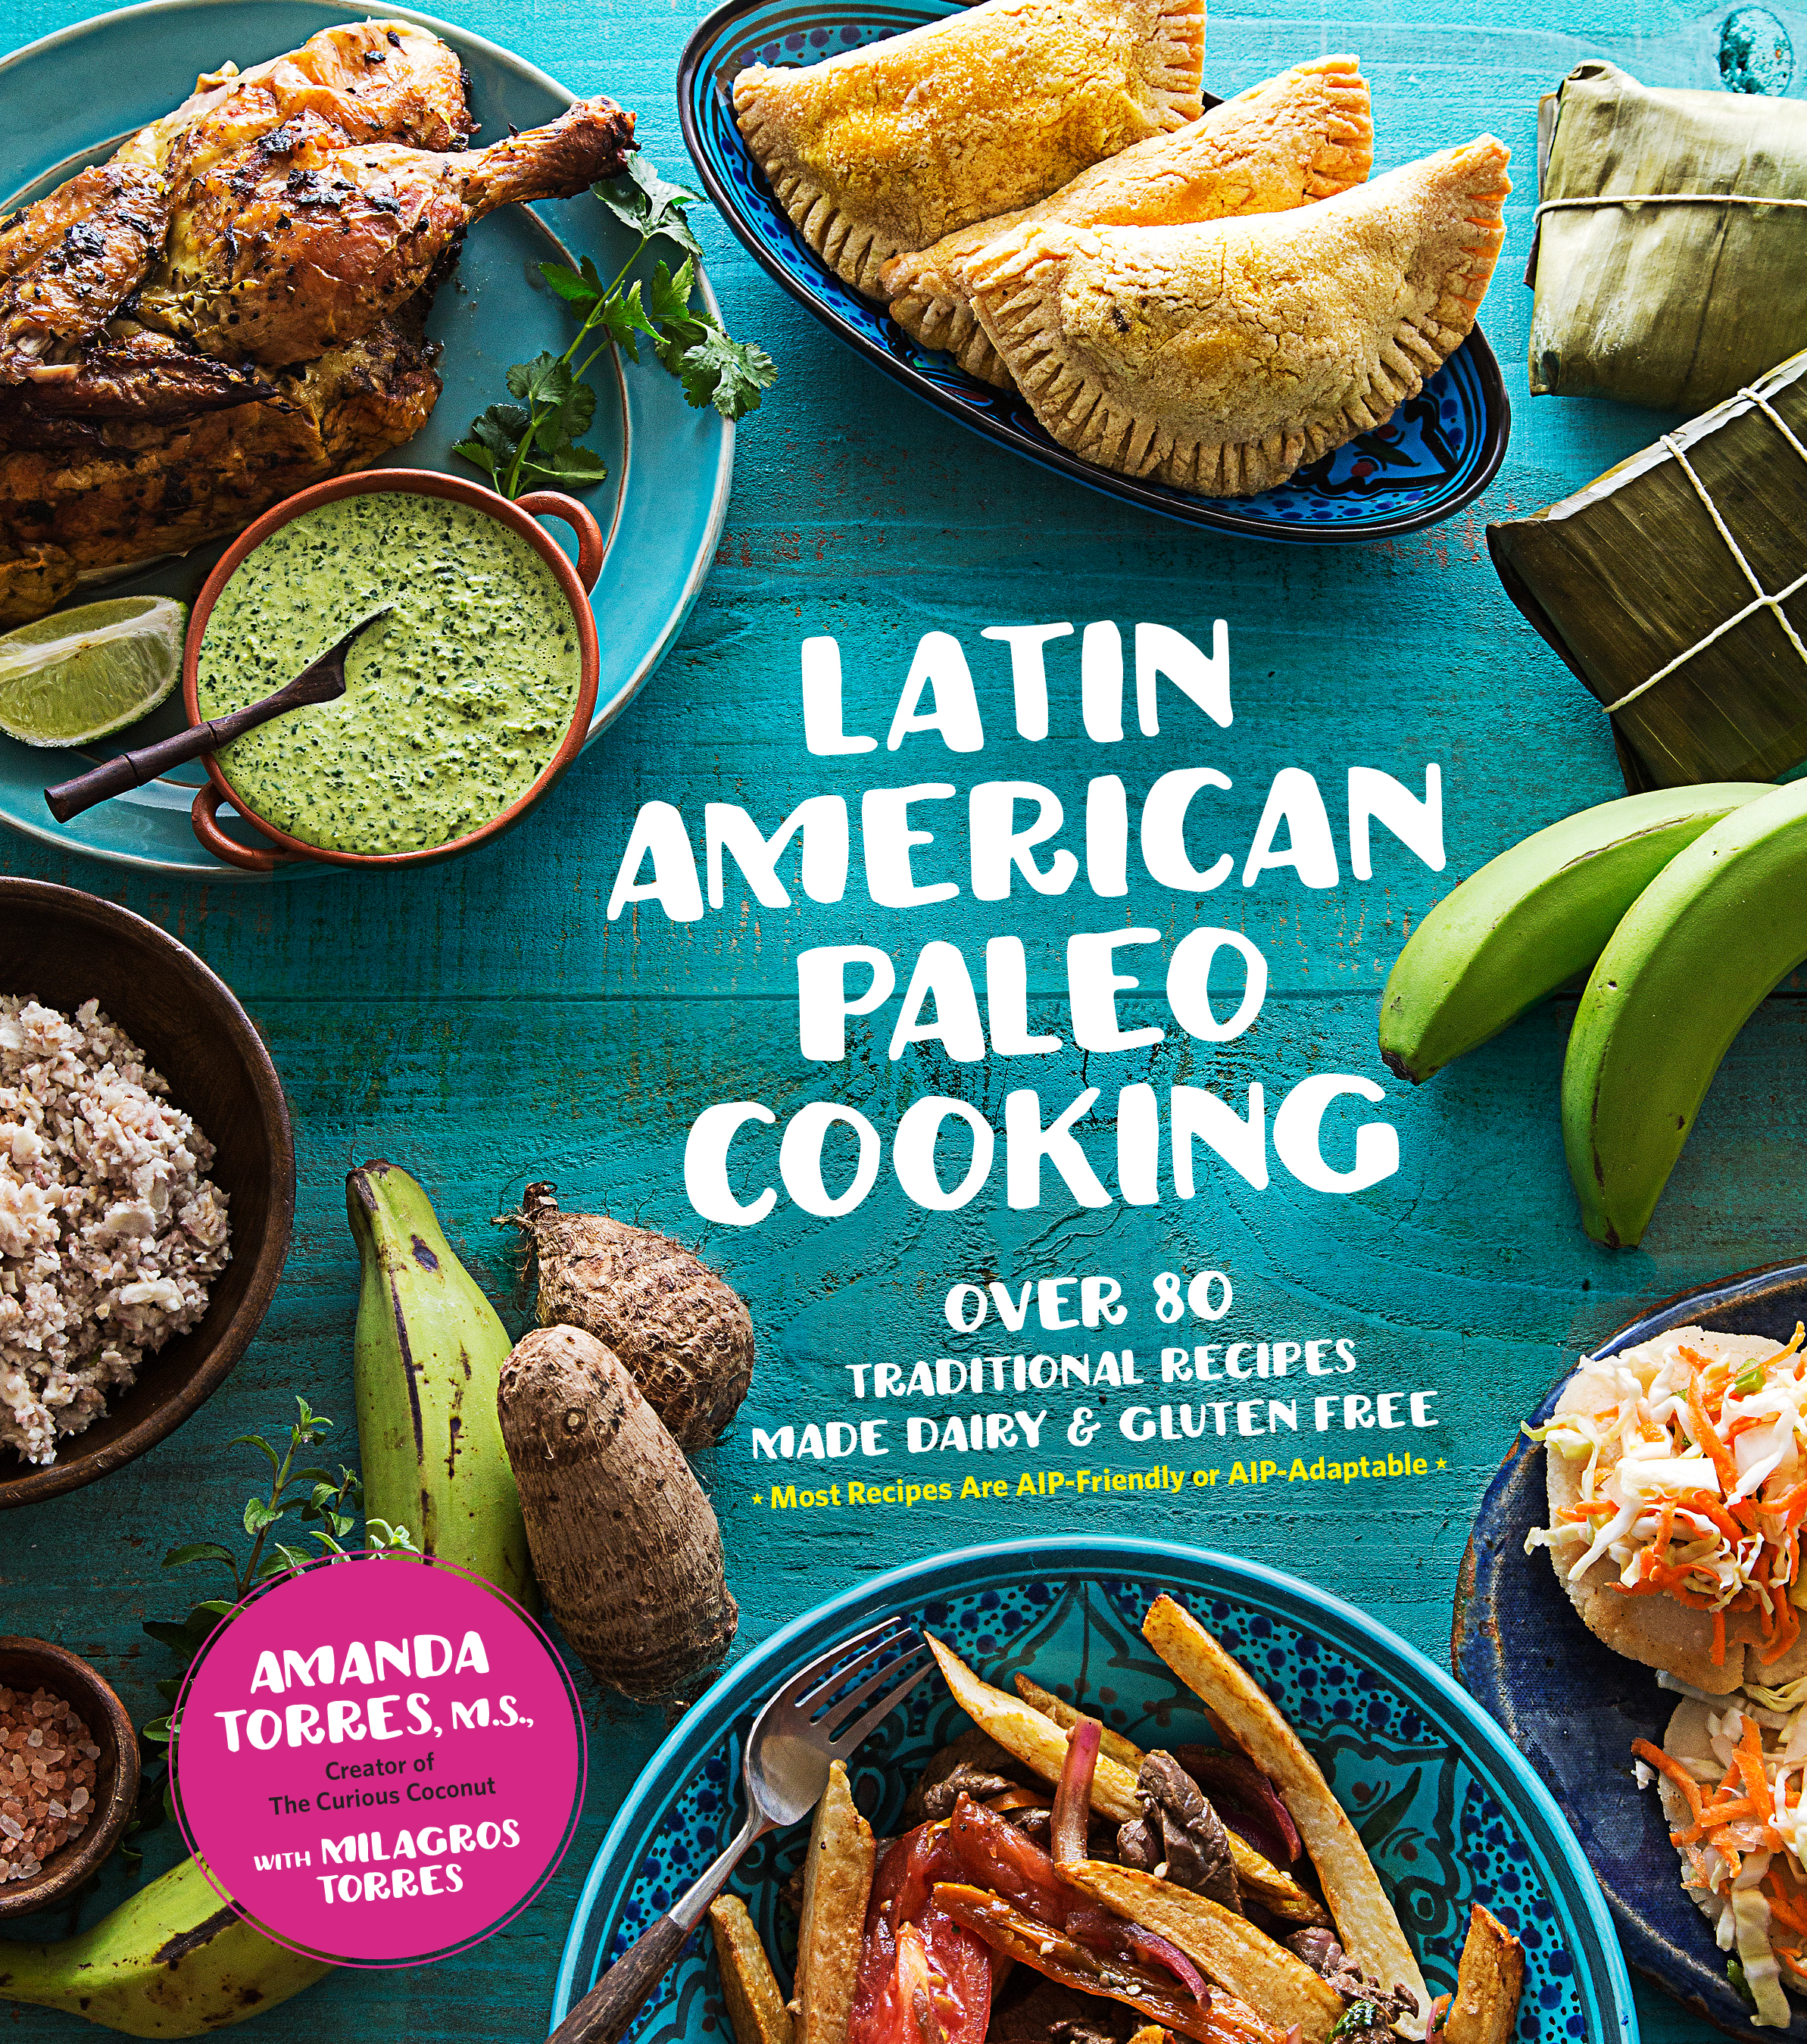 Latin American Paleo Cooking by Amanda Torres with Milagros Torres